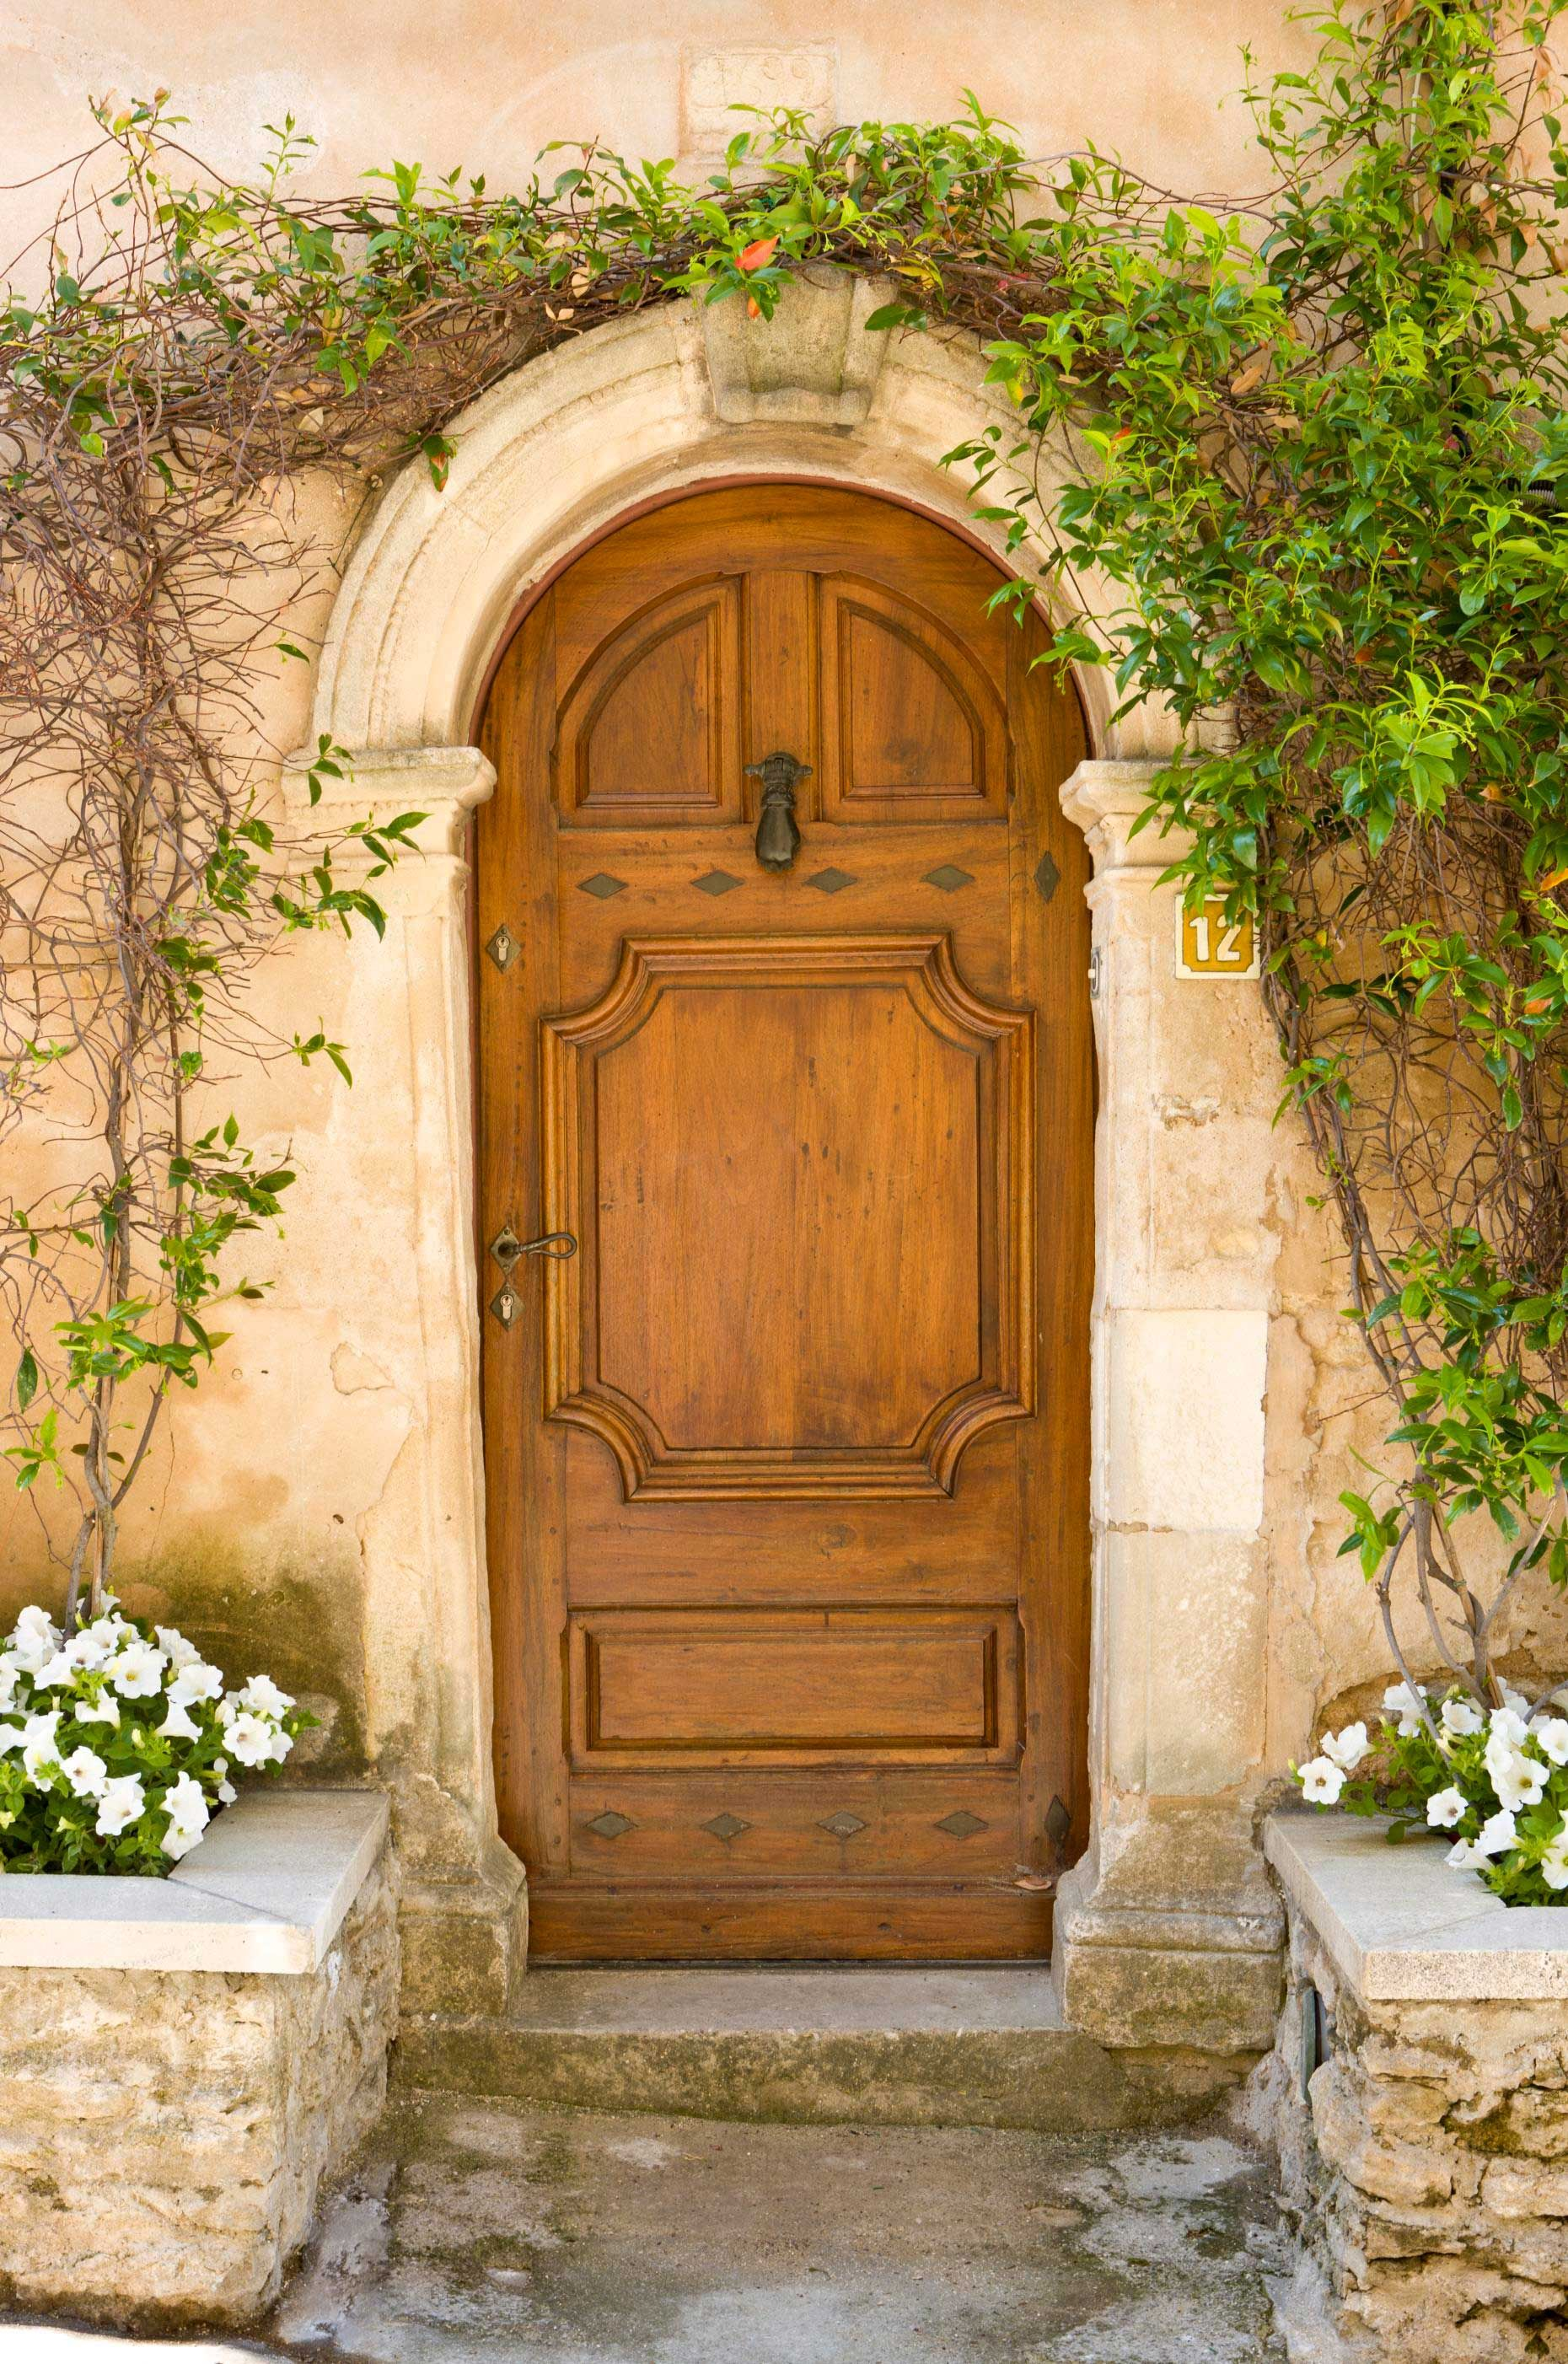 French Country Home Decor Ideas: French Country Home That Embraces History